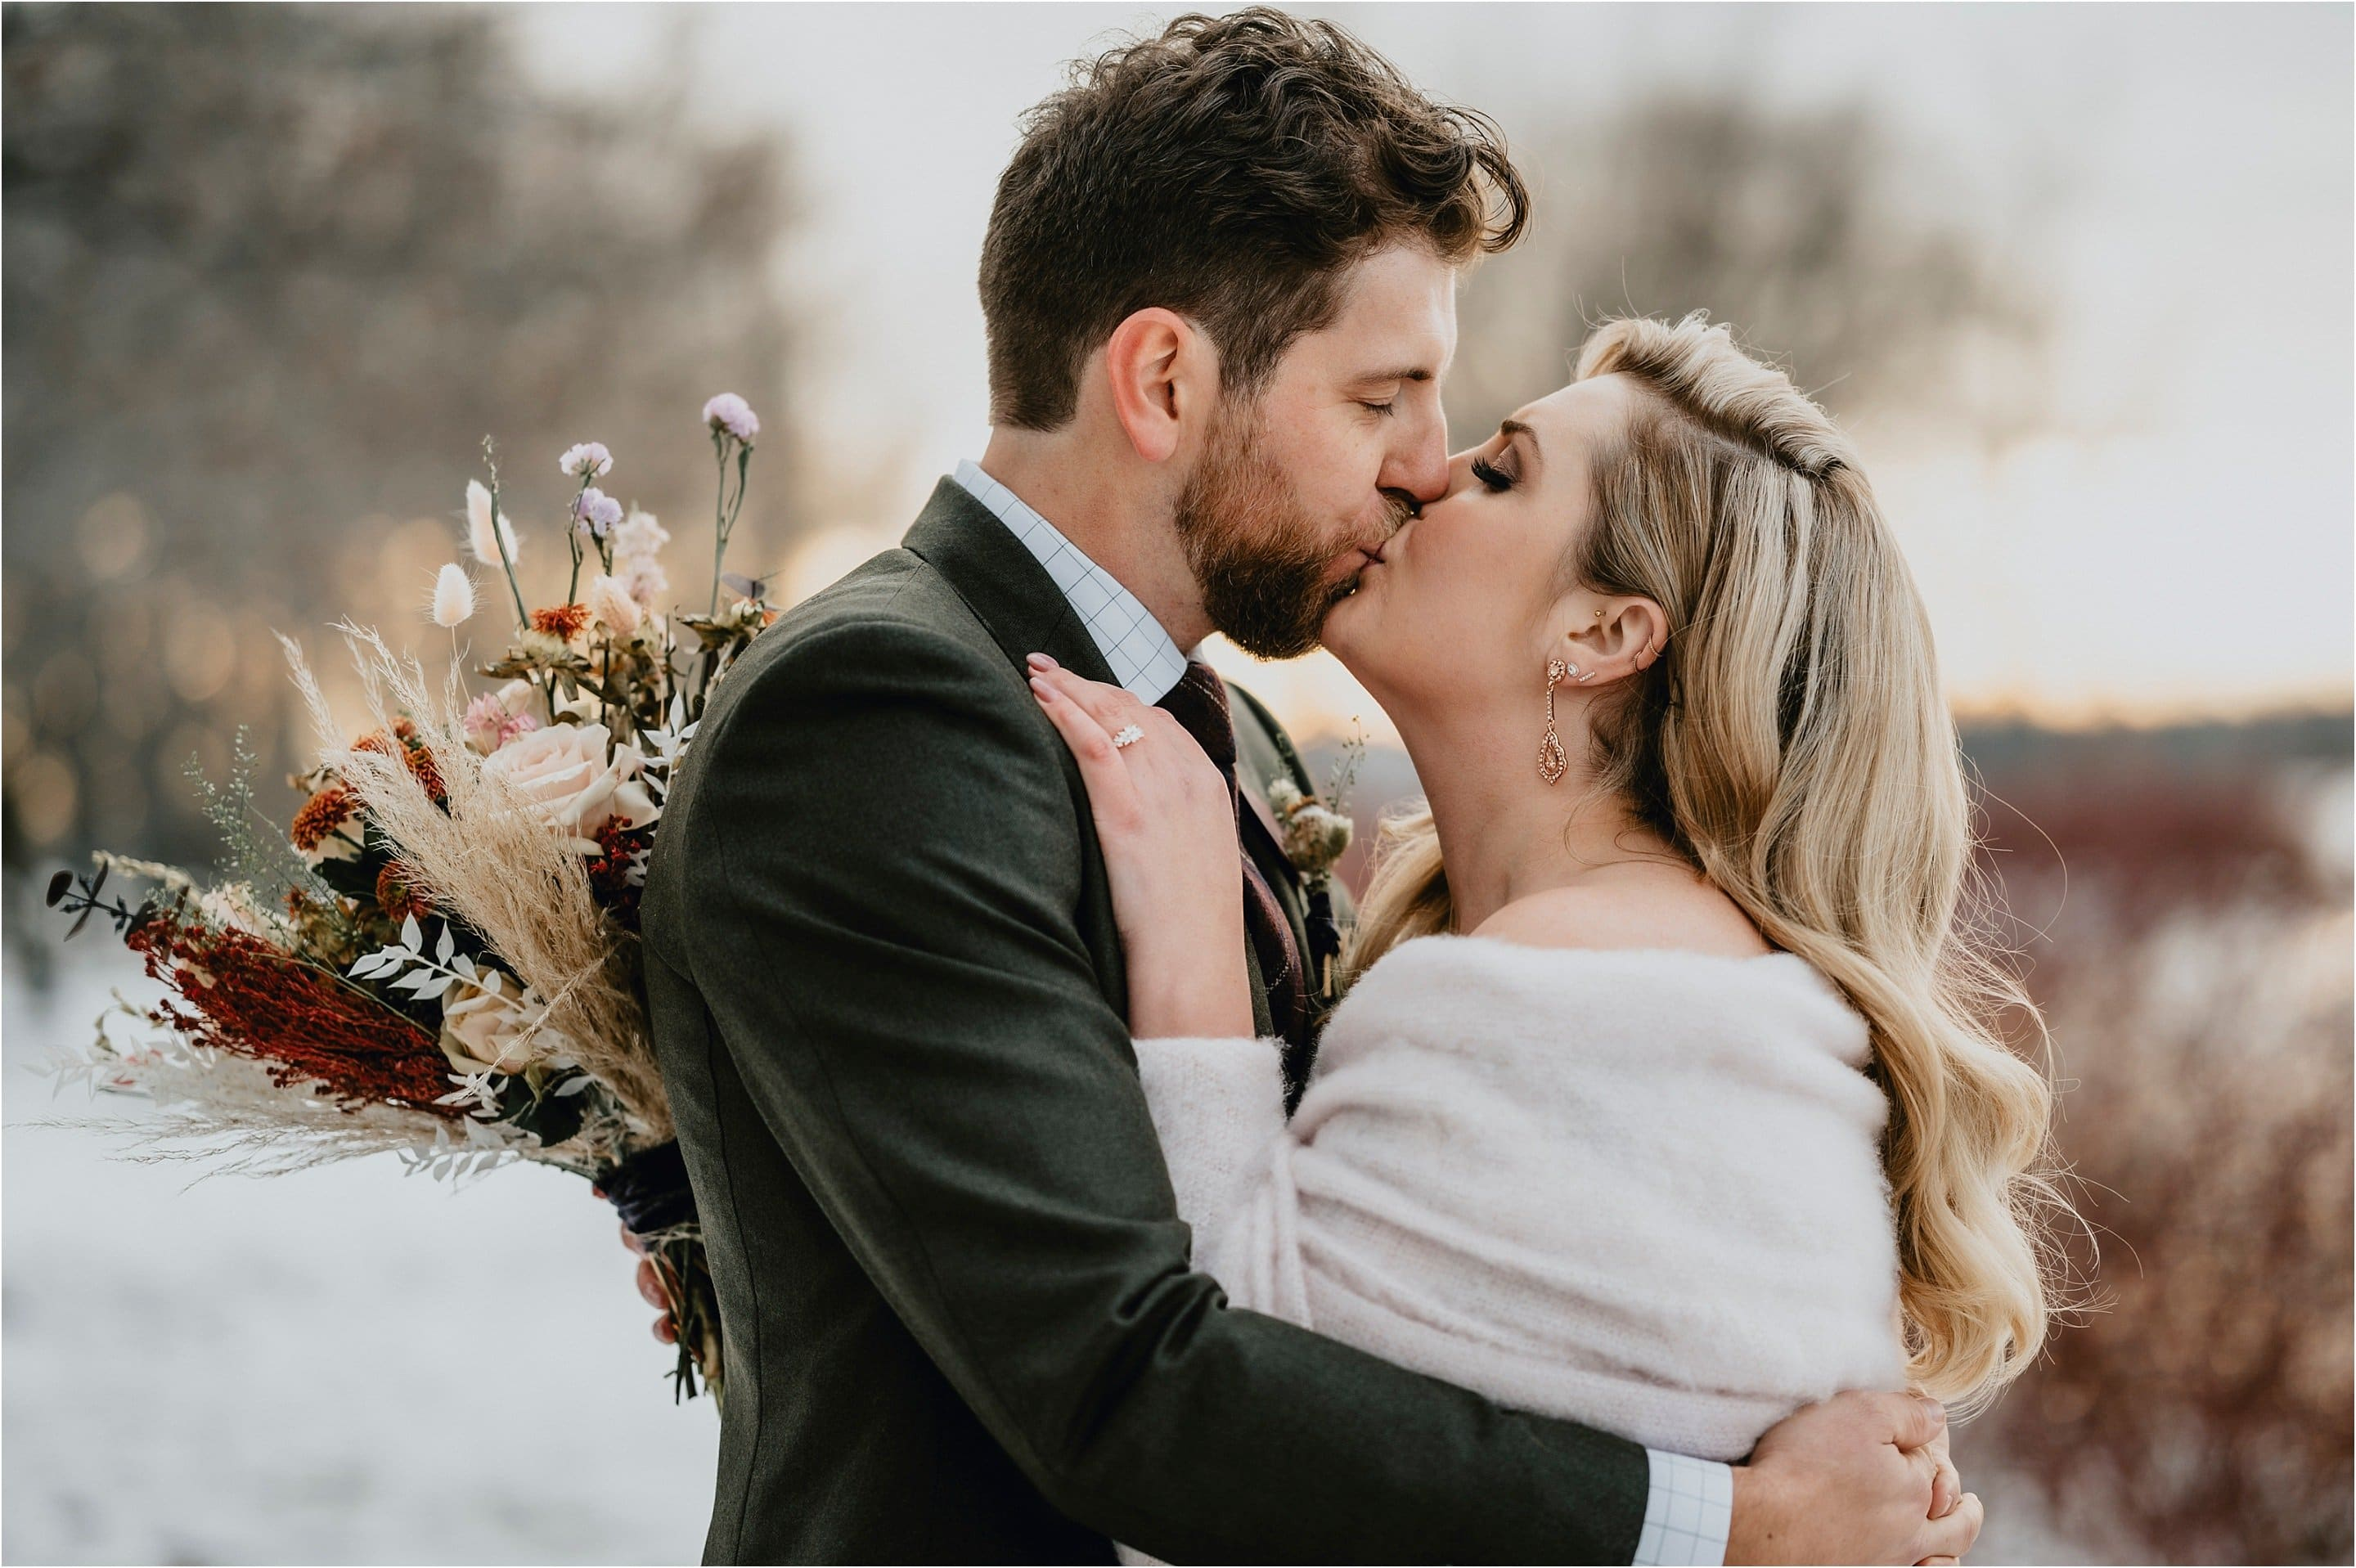 Hotel Grand Wedding - Bride and Groom kiss on a winter day